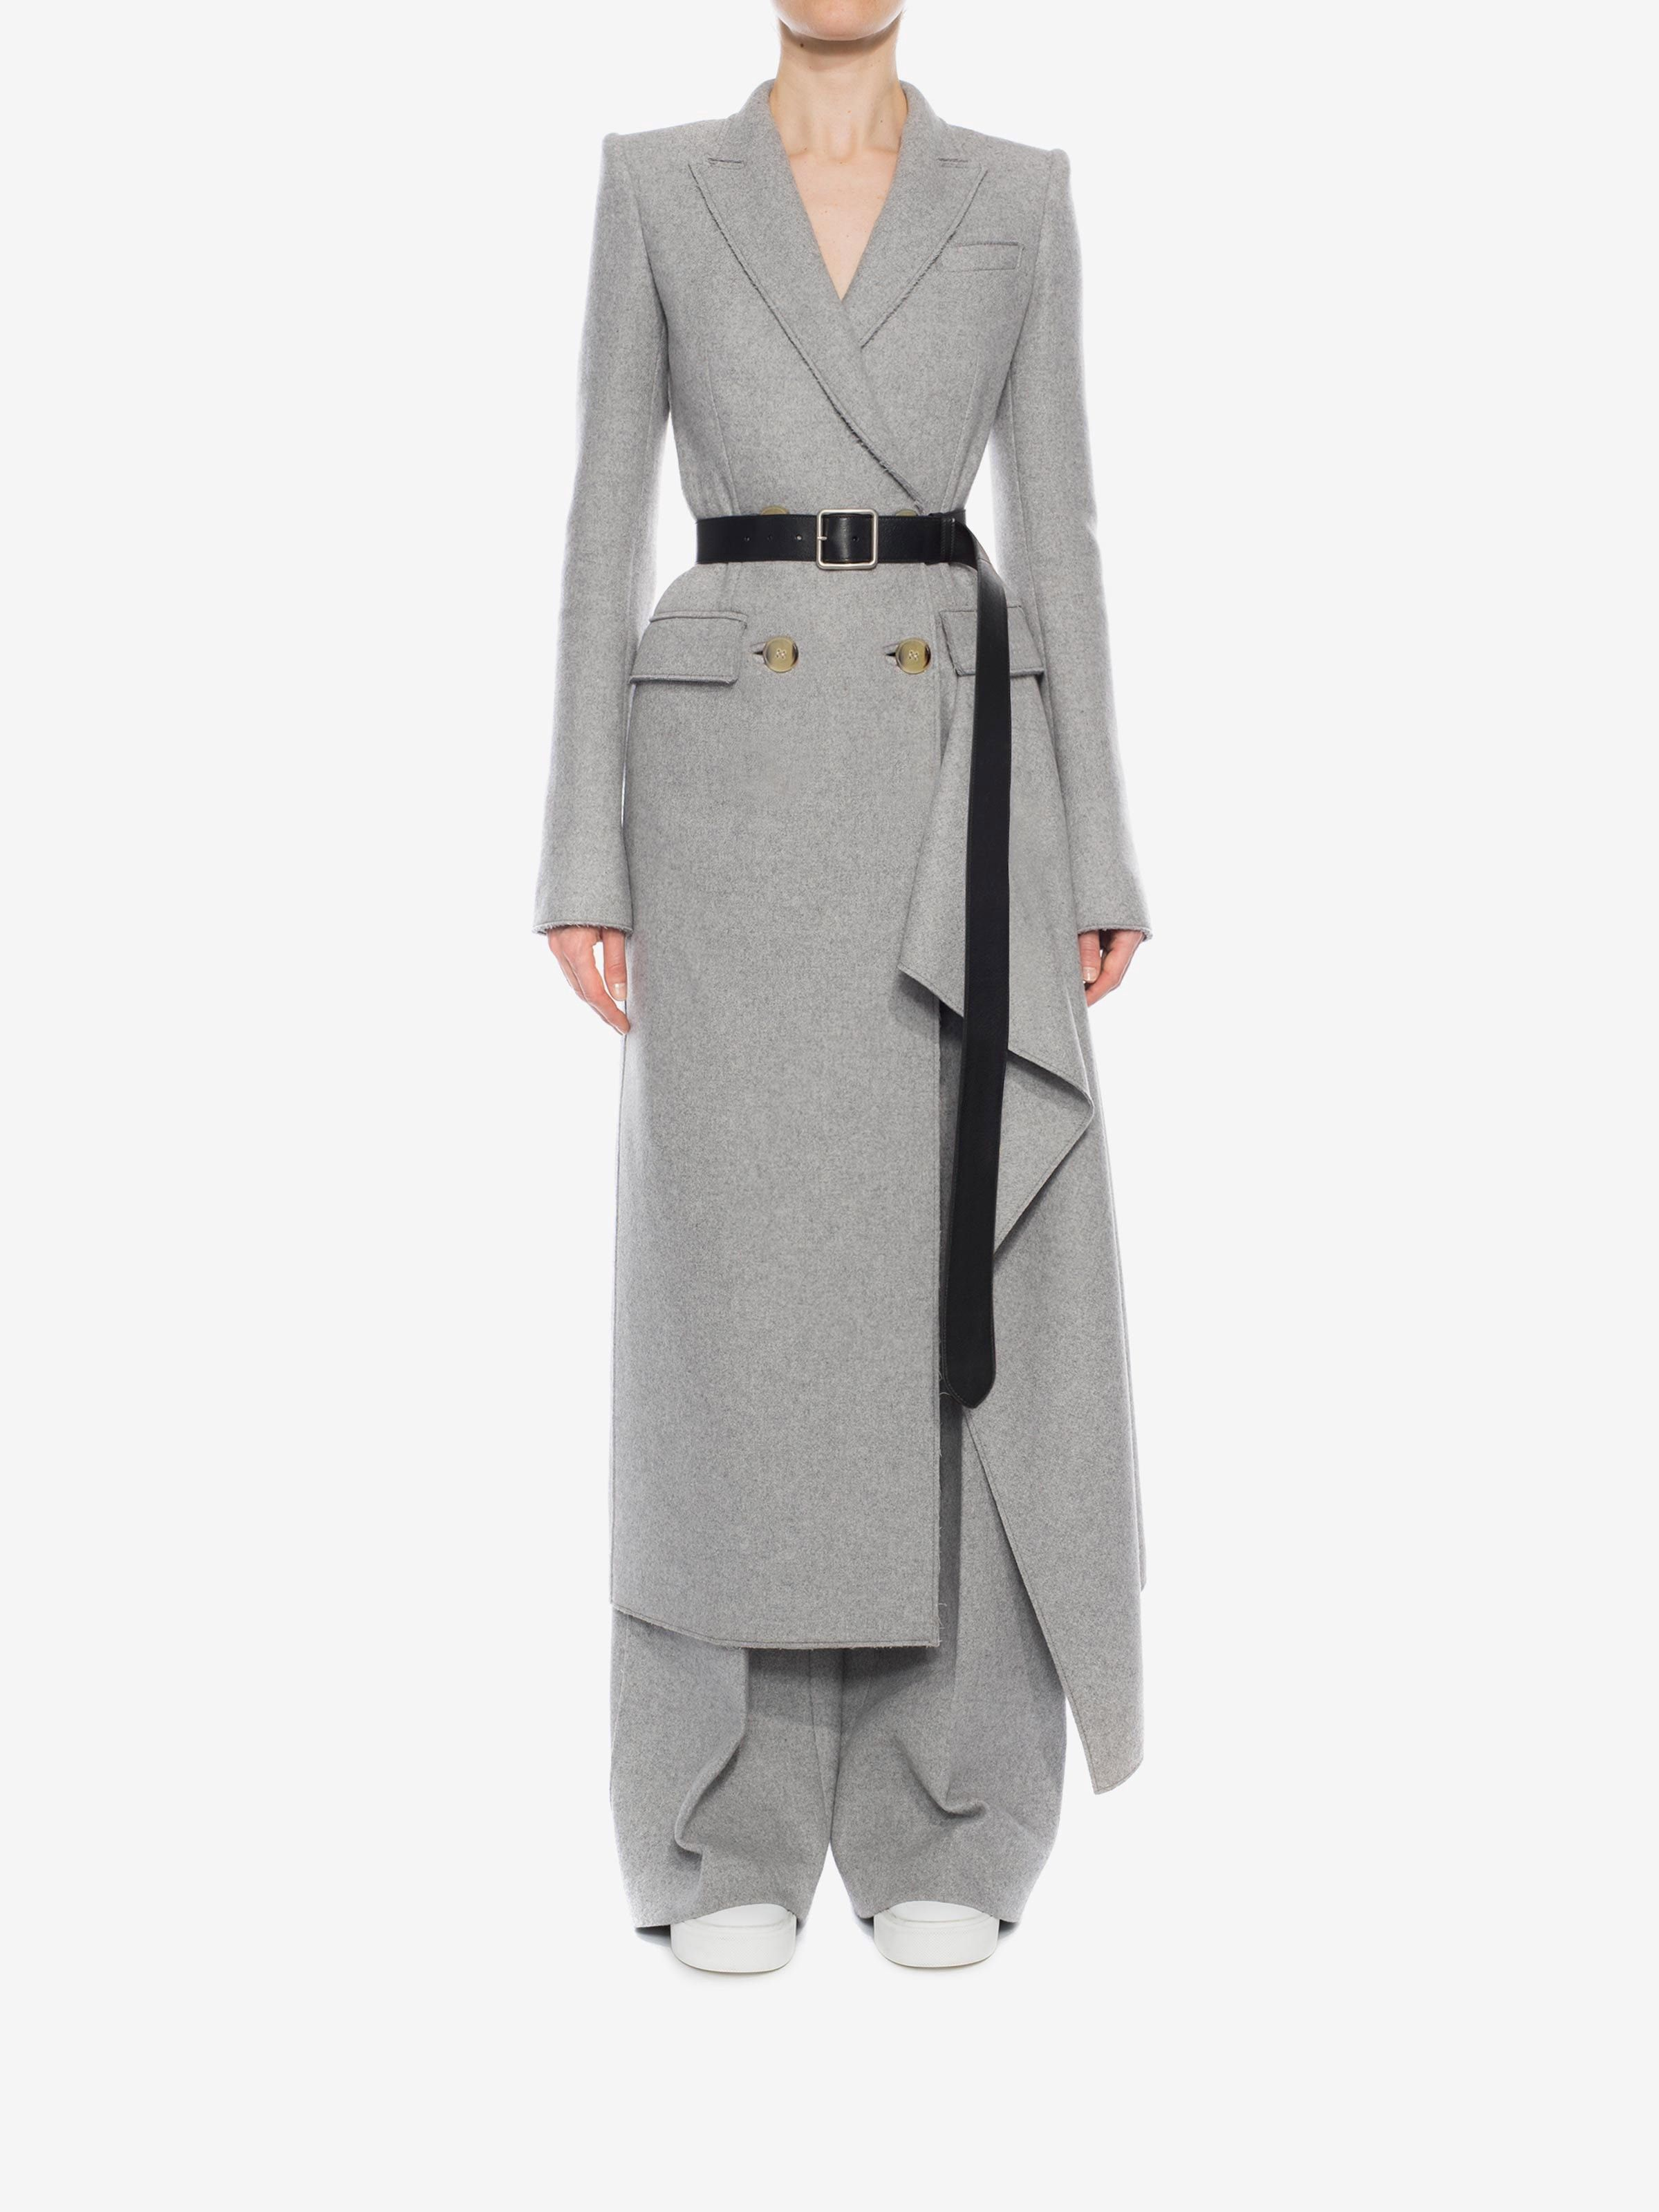 coat women easy drape link uk care drapes trench uniqlo i